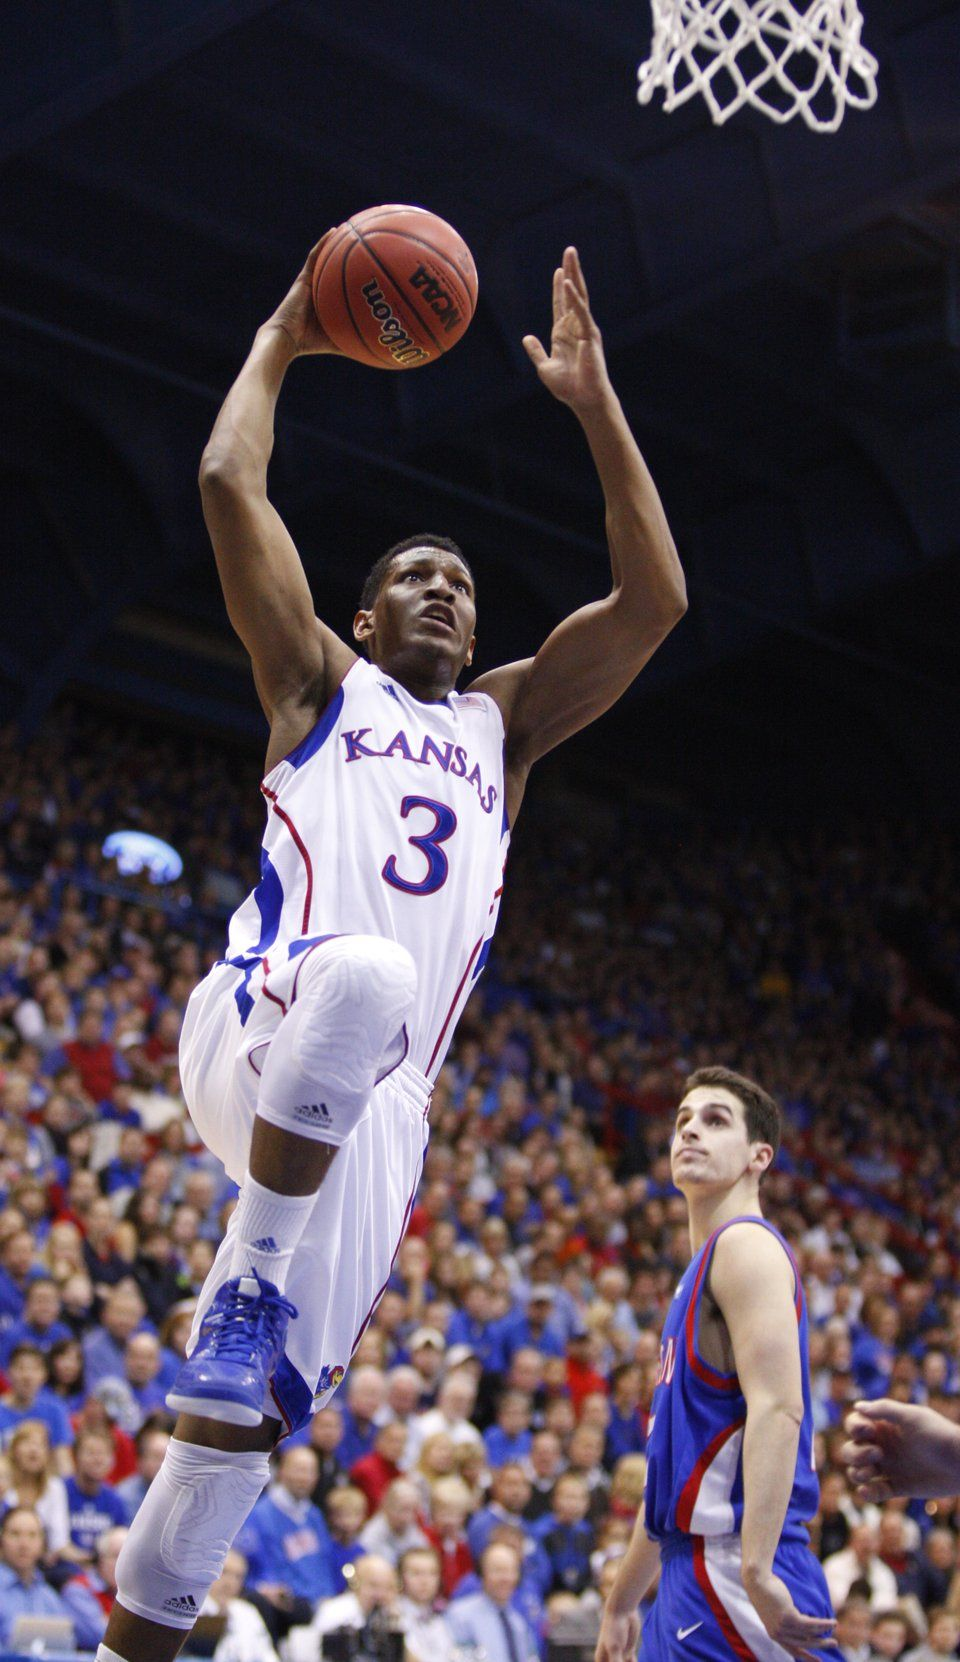 Kansas guard Andrew White elevates to the bucket for a